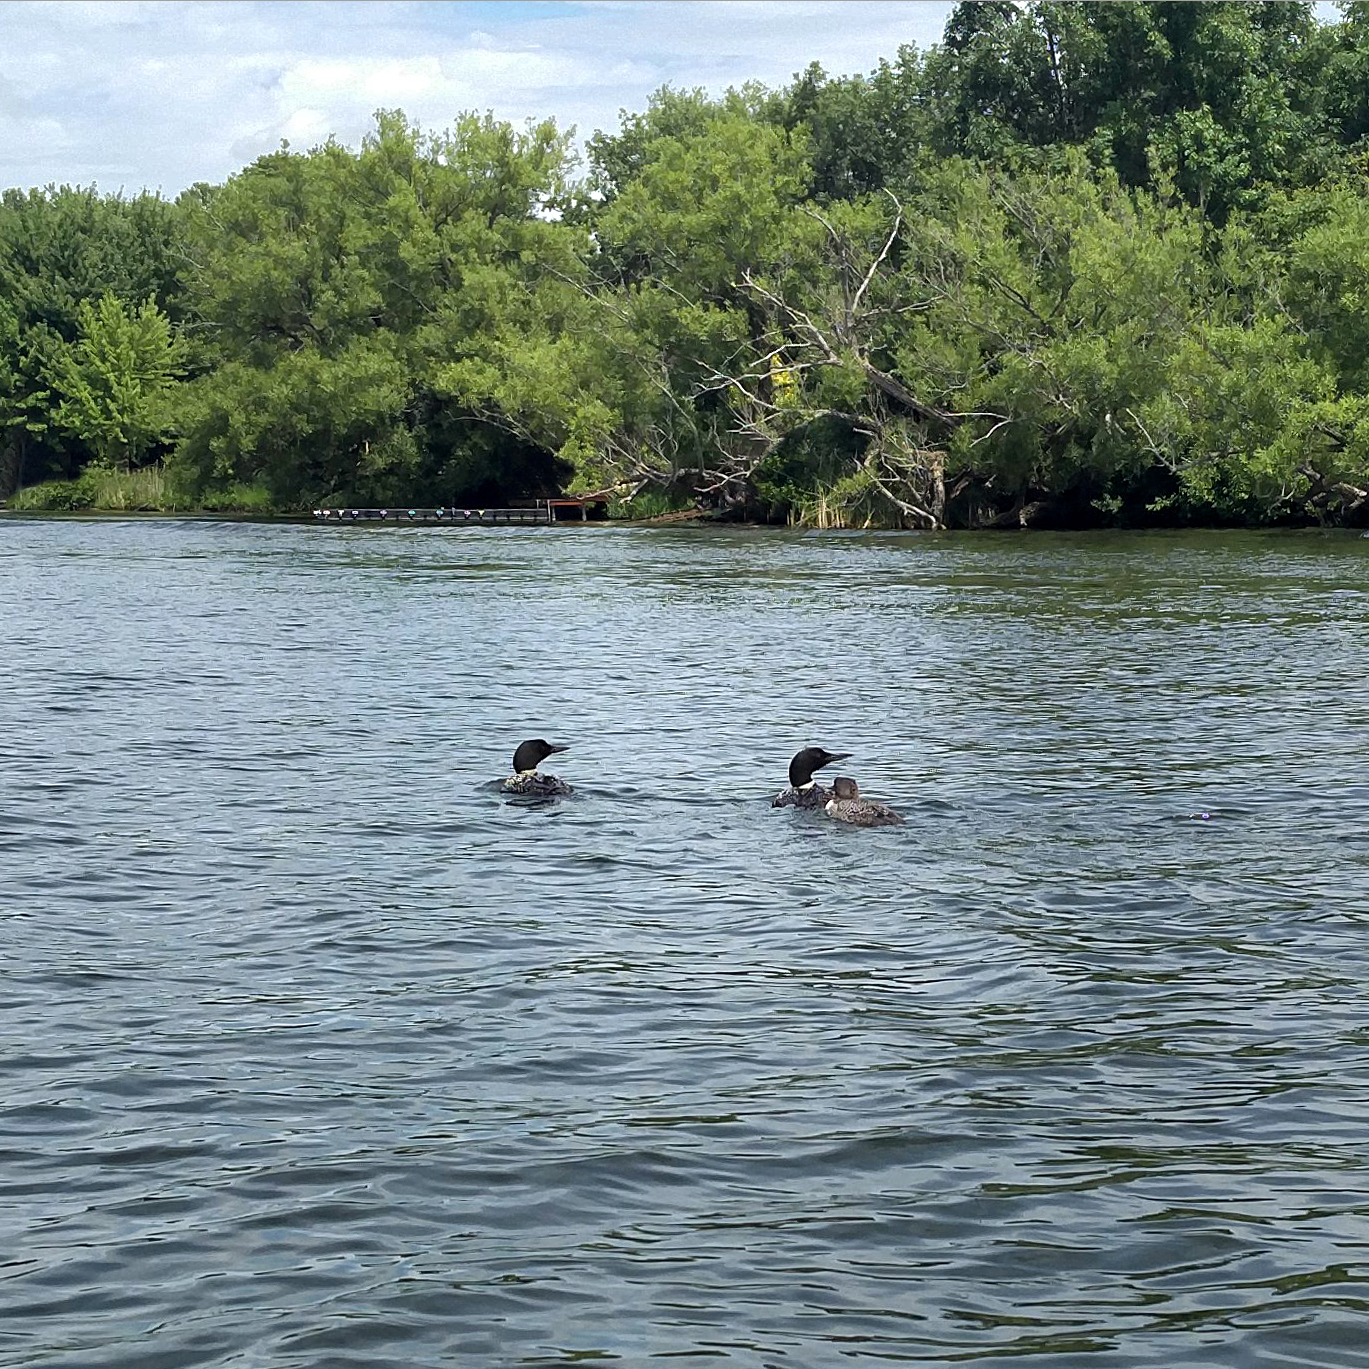 Loons on the river